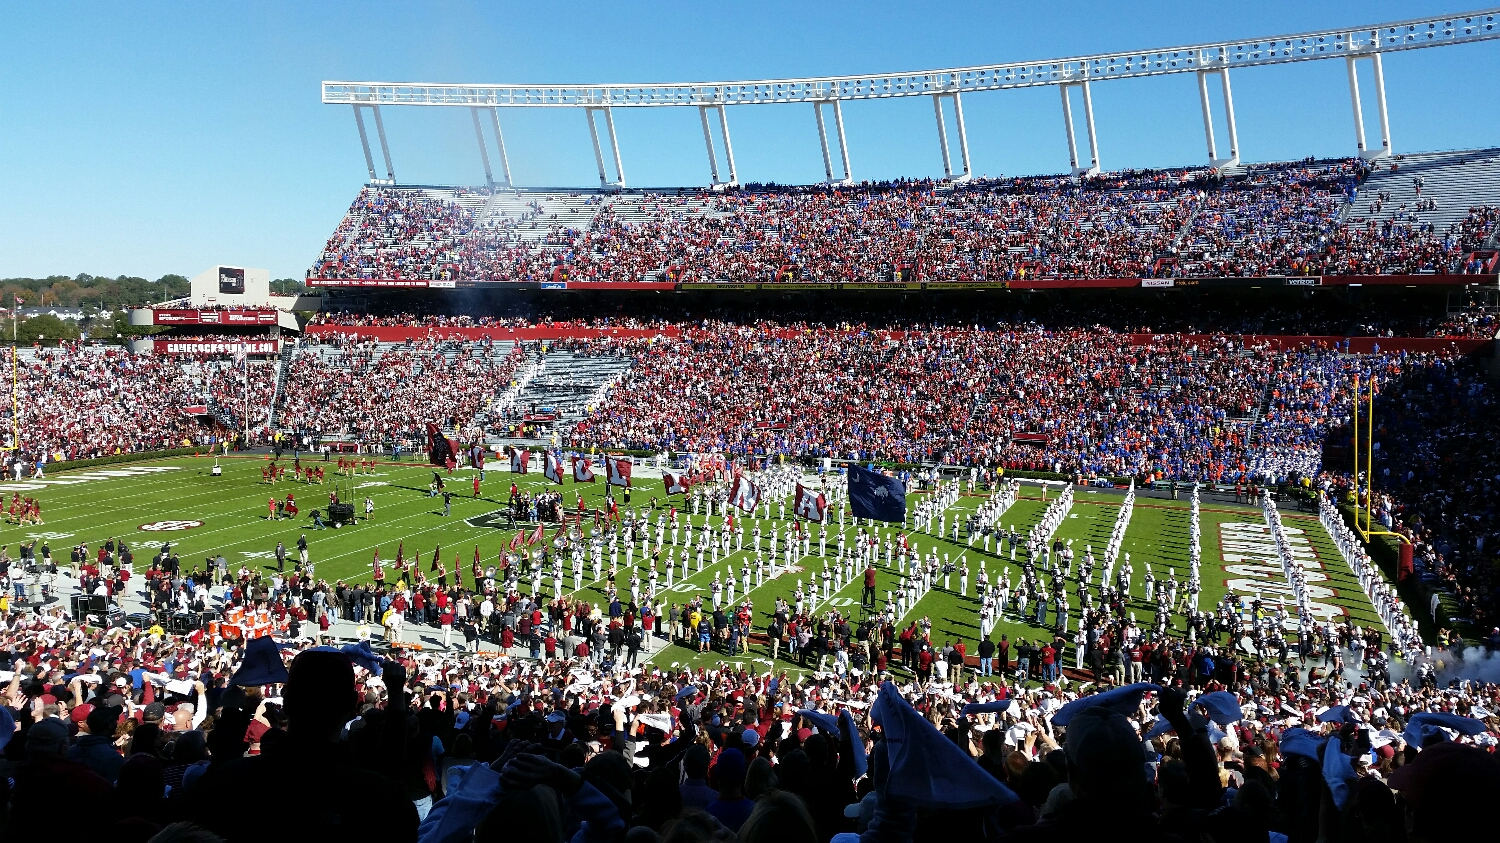 The Gamecocks take the field in front of an anemic crowd on November 14, 2015.